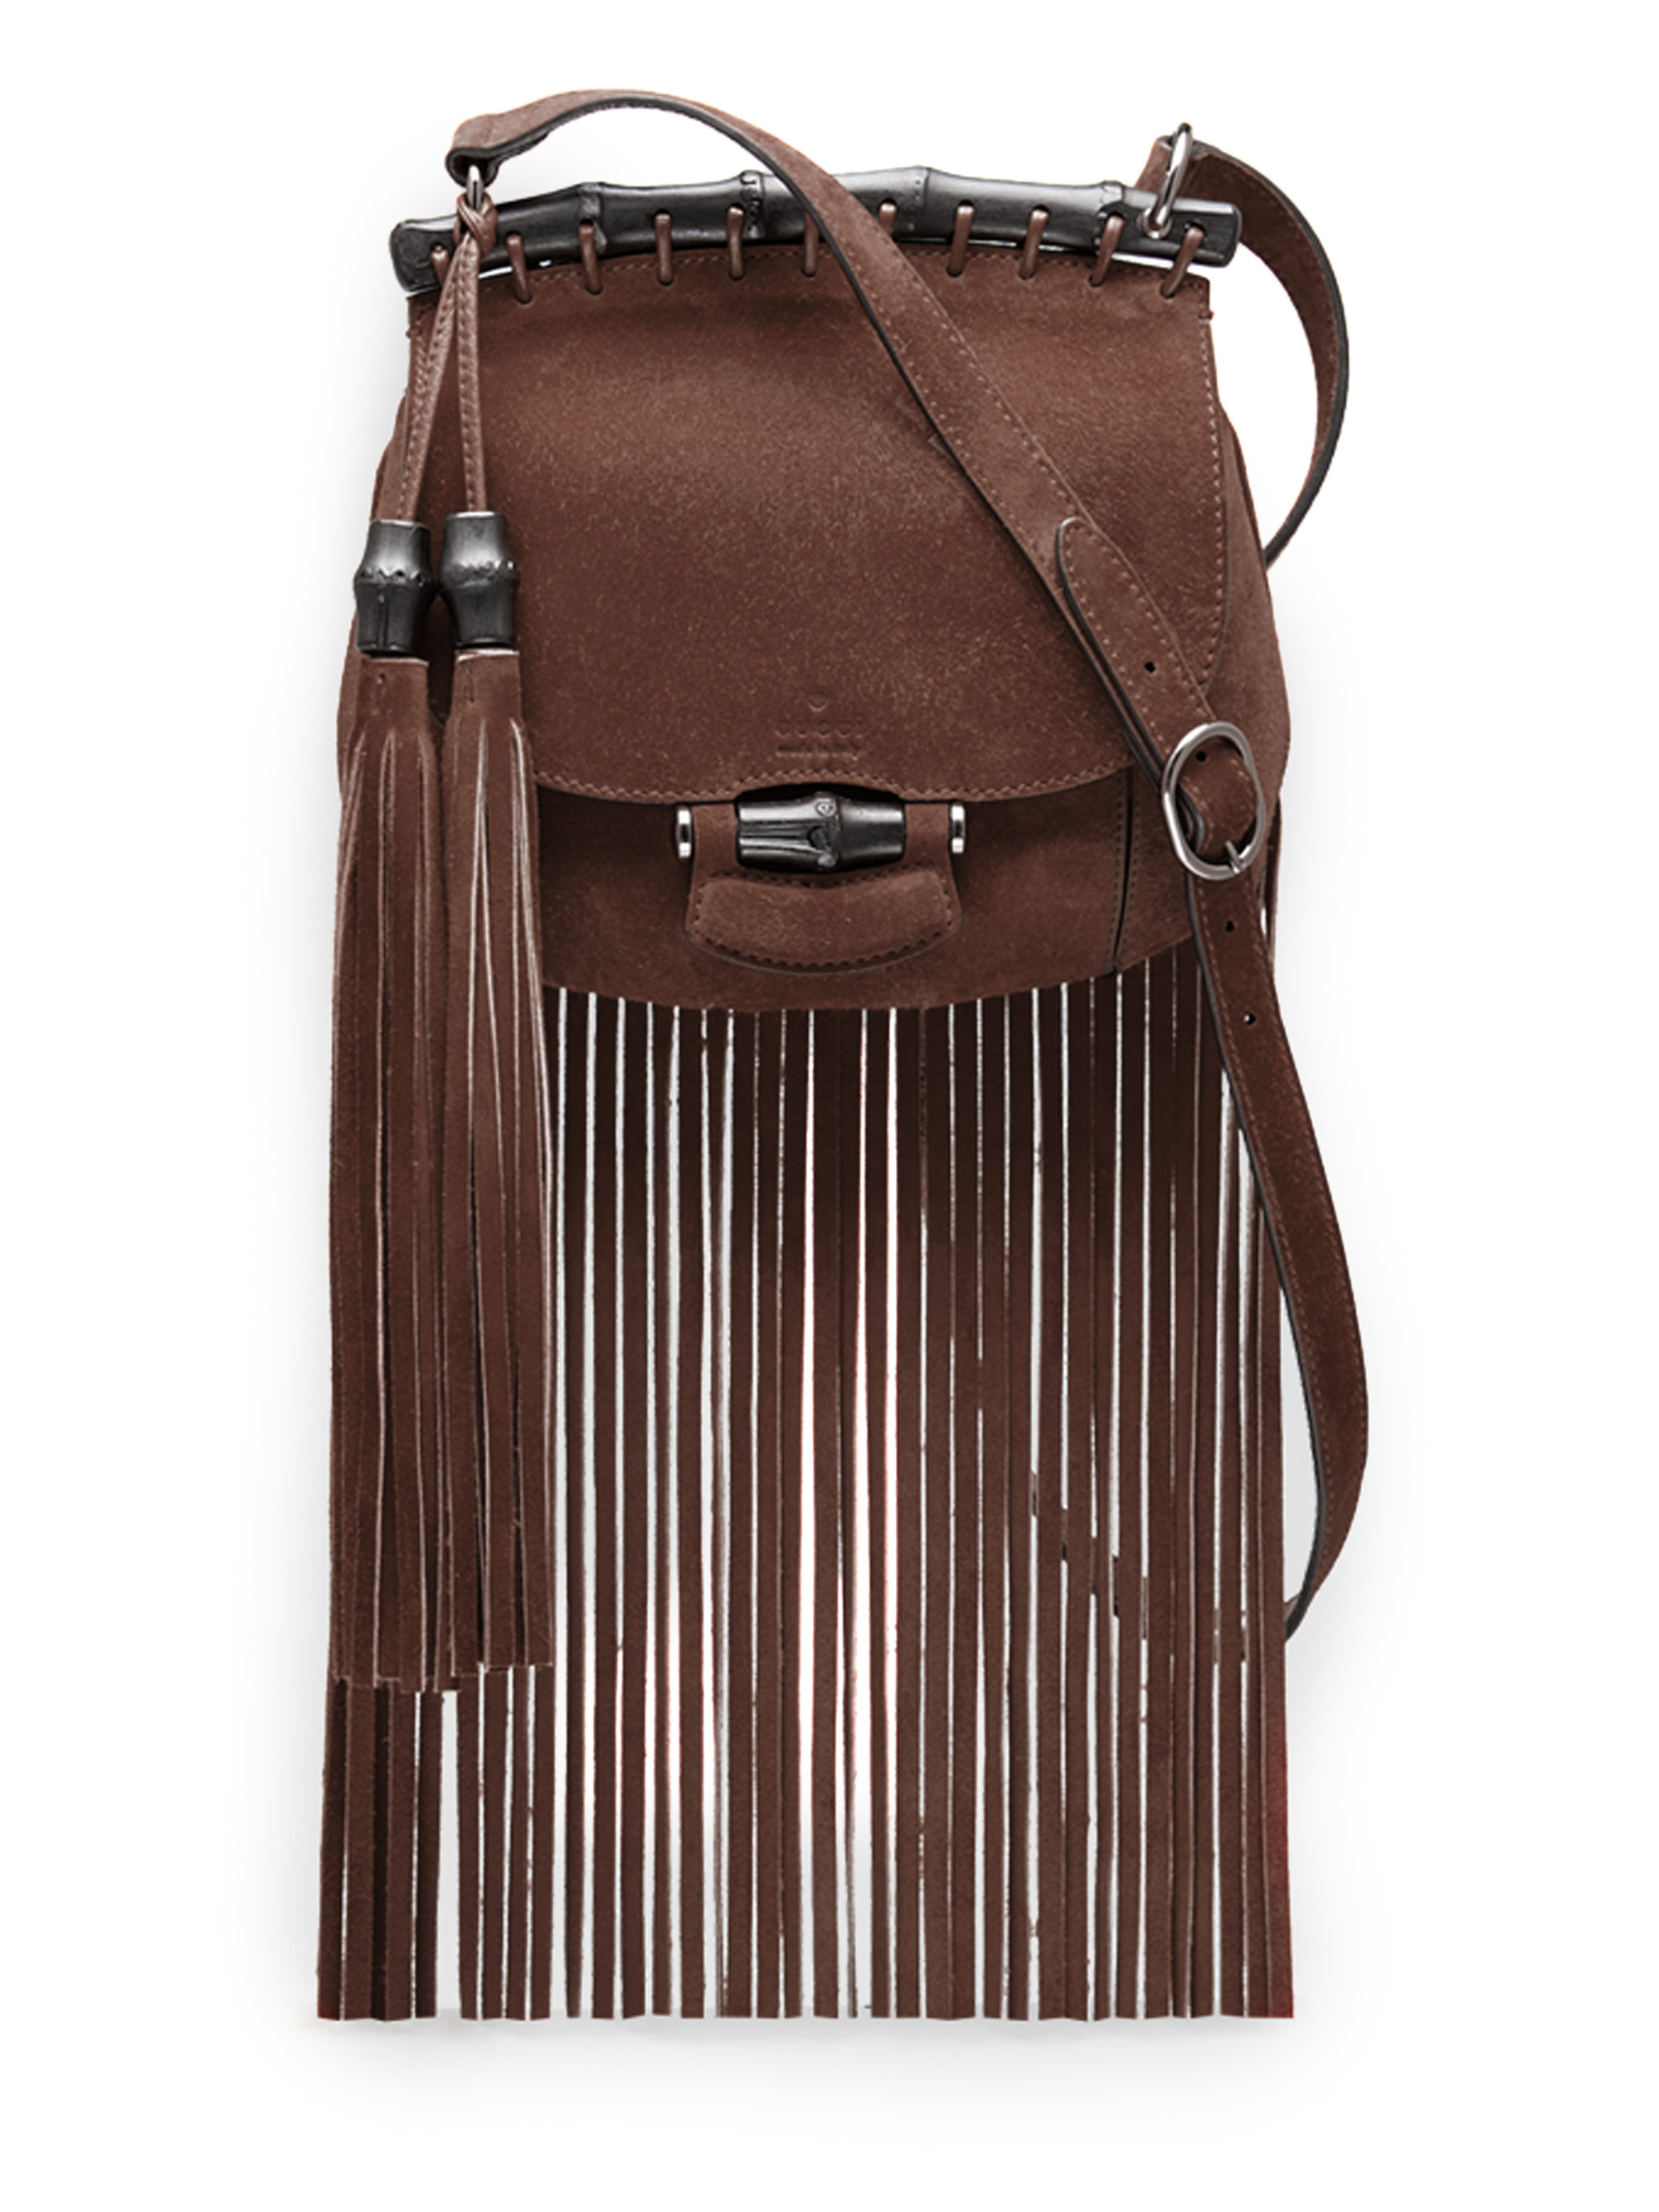 b976f1e4d Gallery. Previously sold at: Saks Fifth Avenue · Women's Fringed Bags